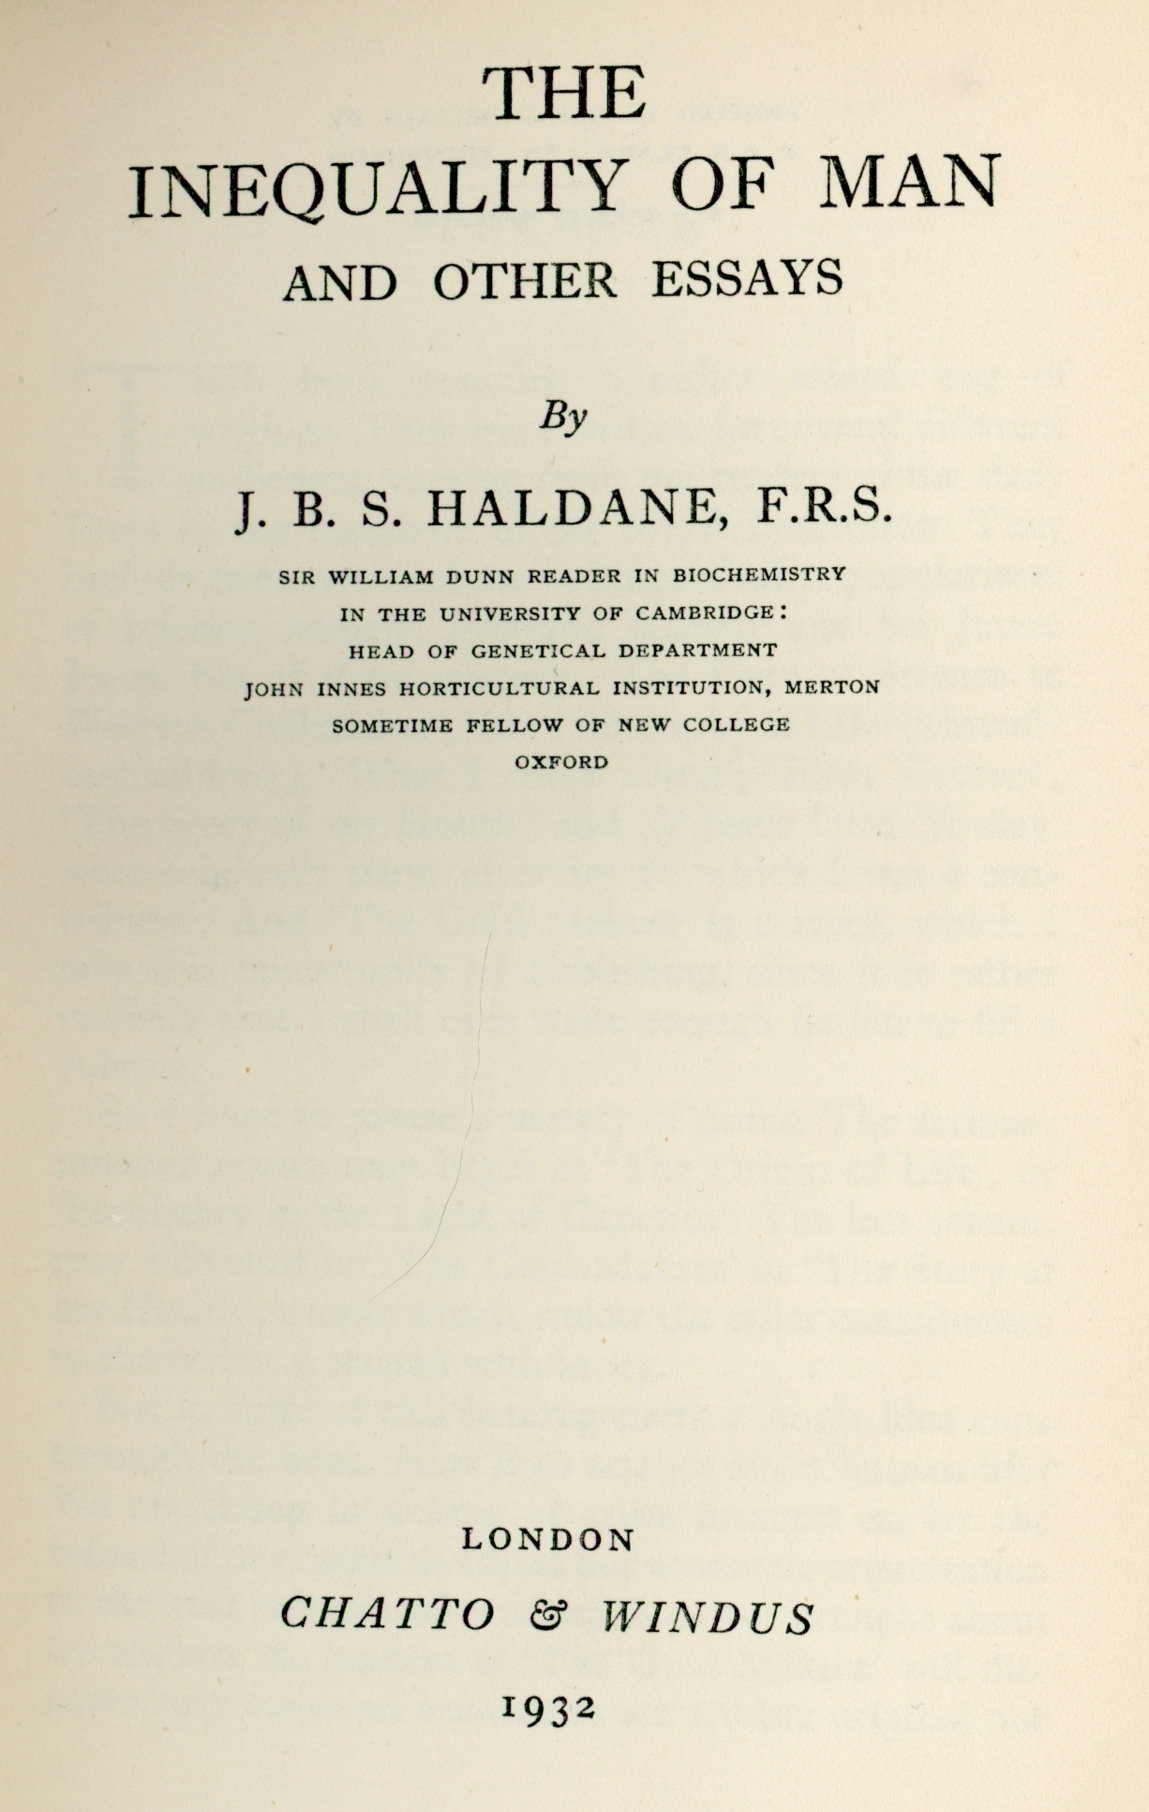 the inequality of man and other essays by jbs haldane